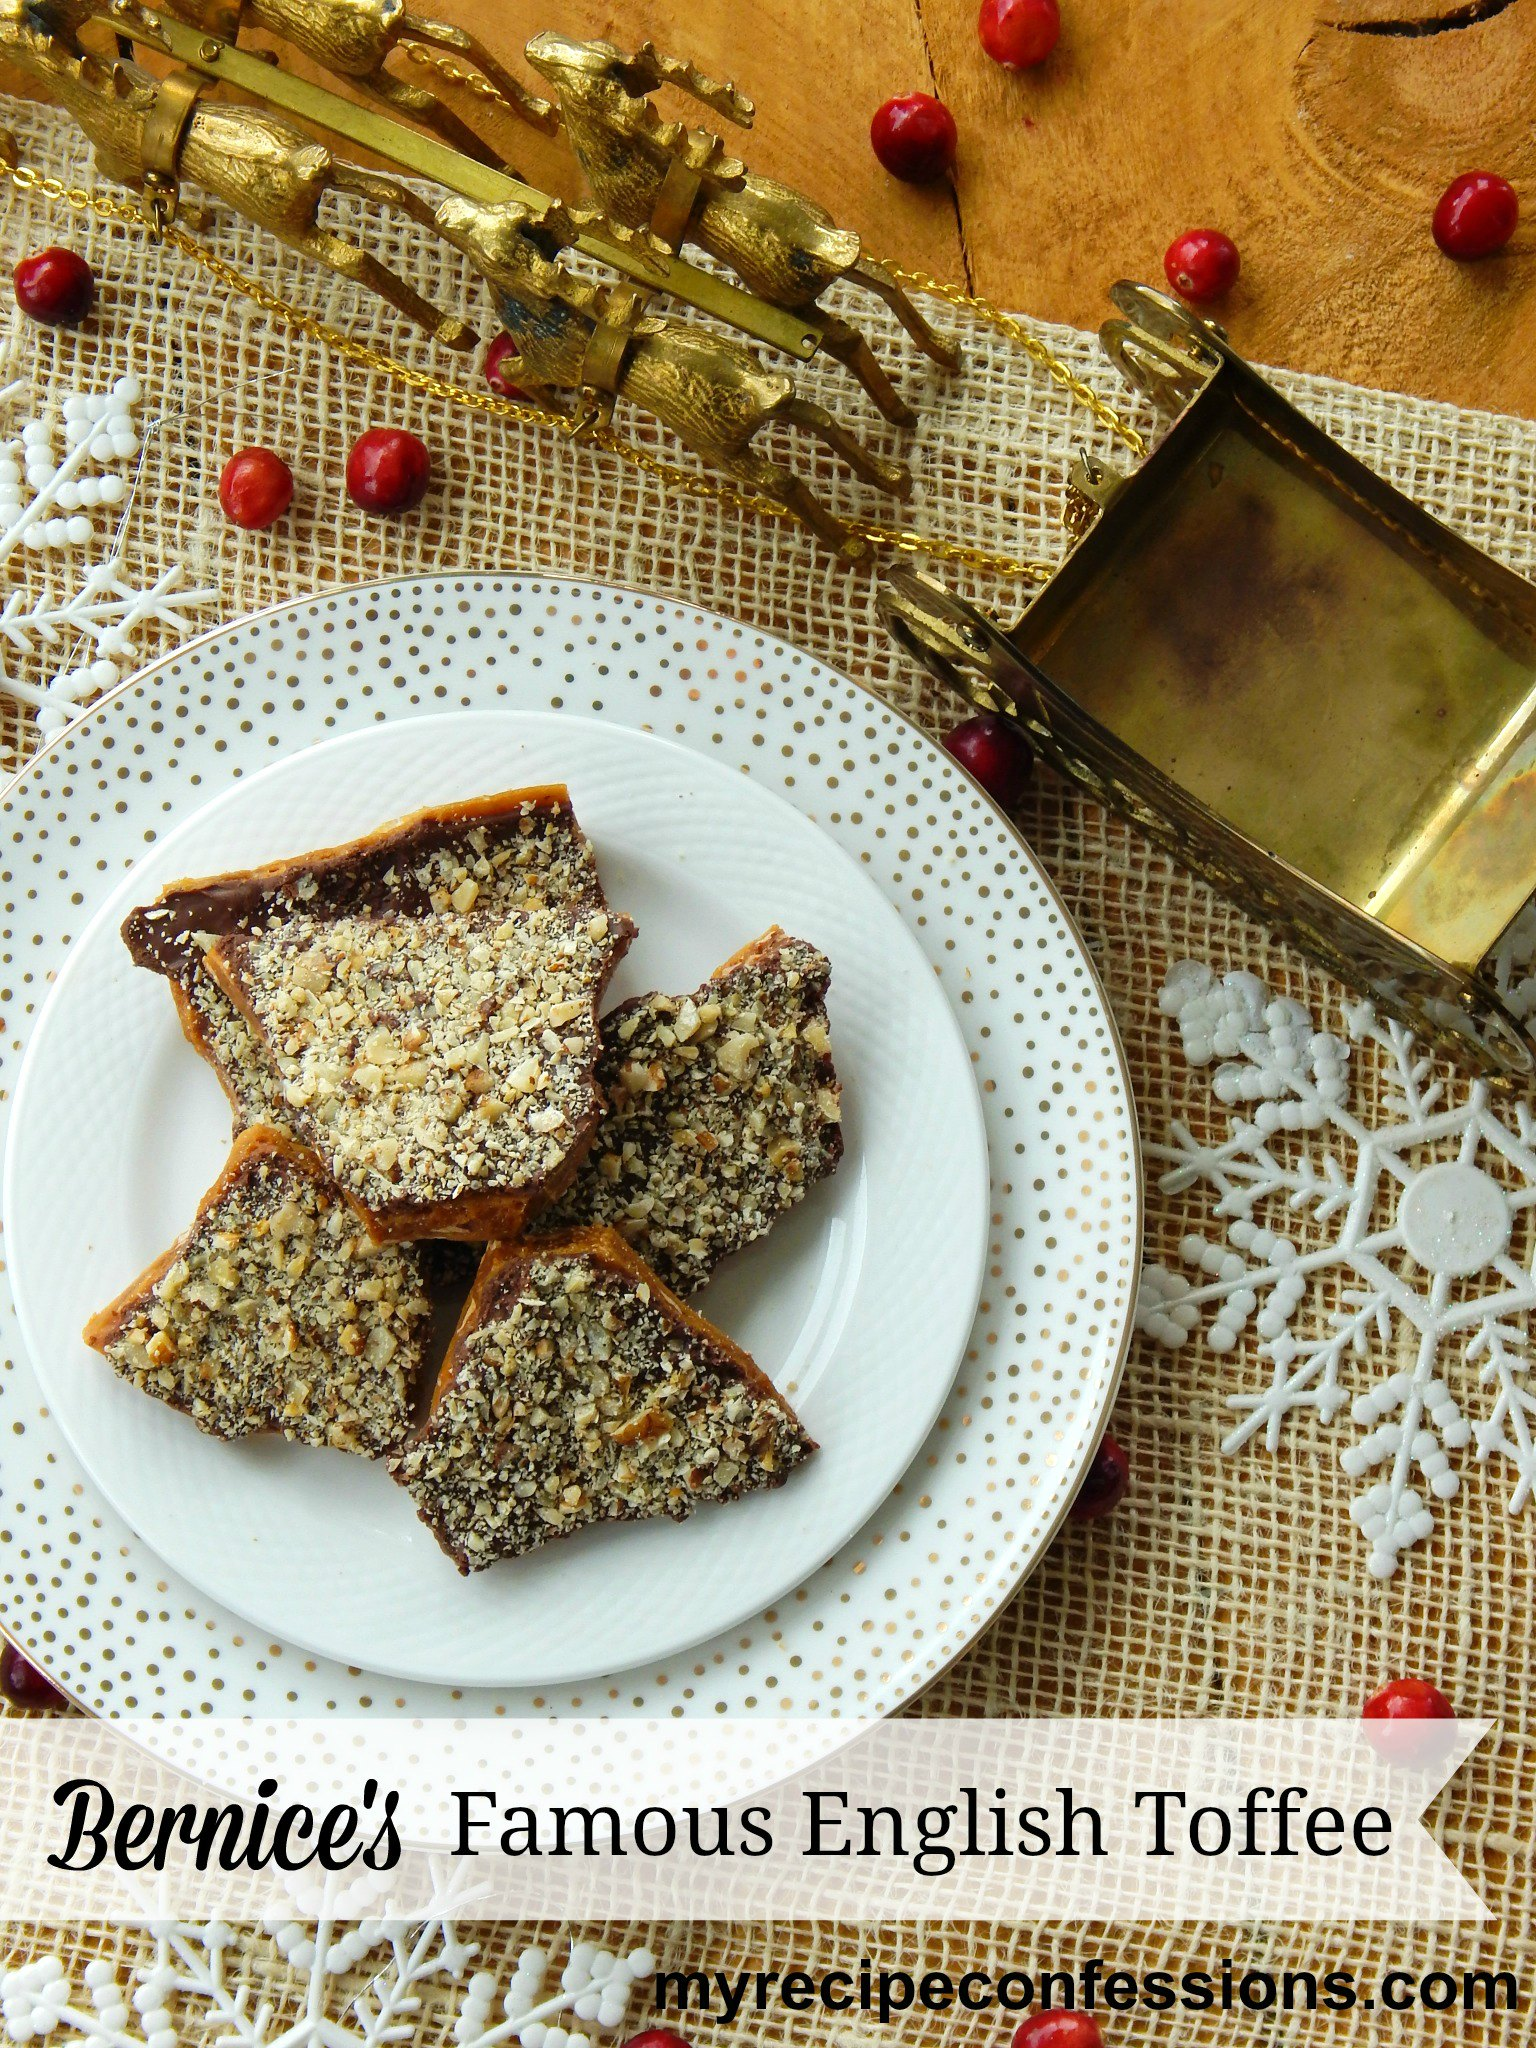 Bernice's Famous English Toffee